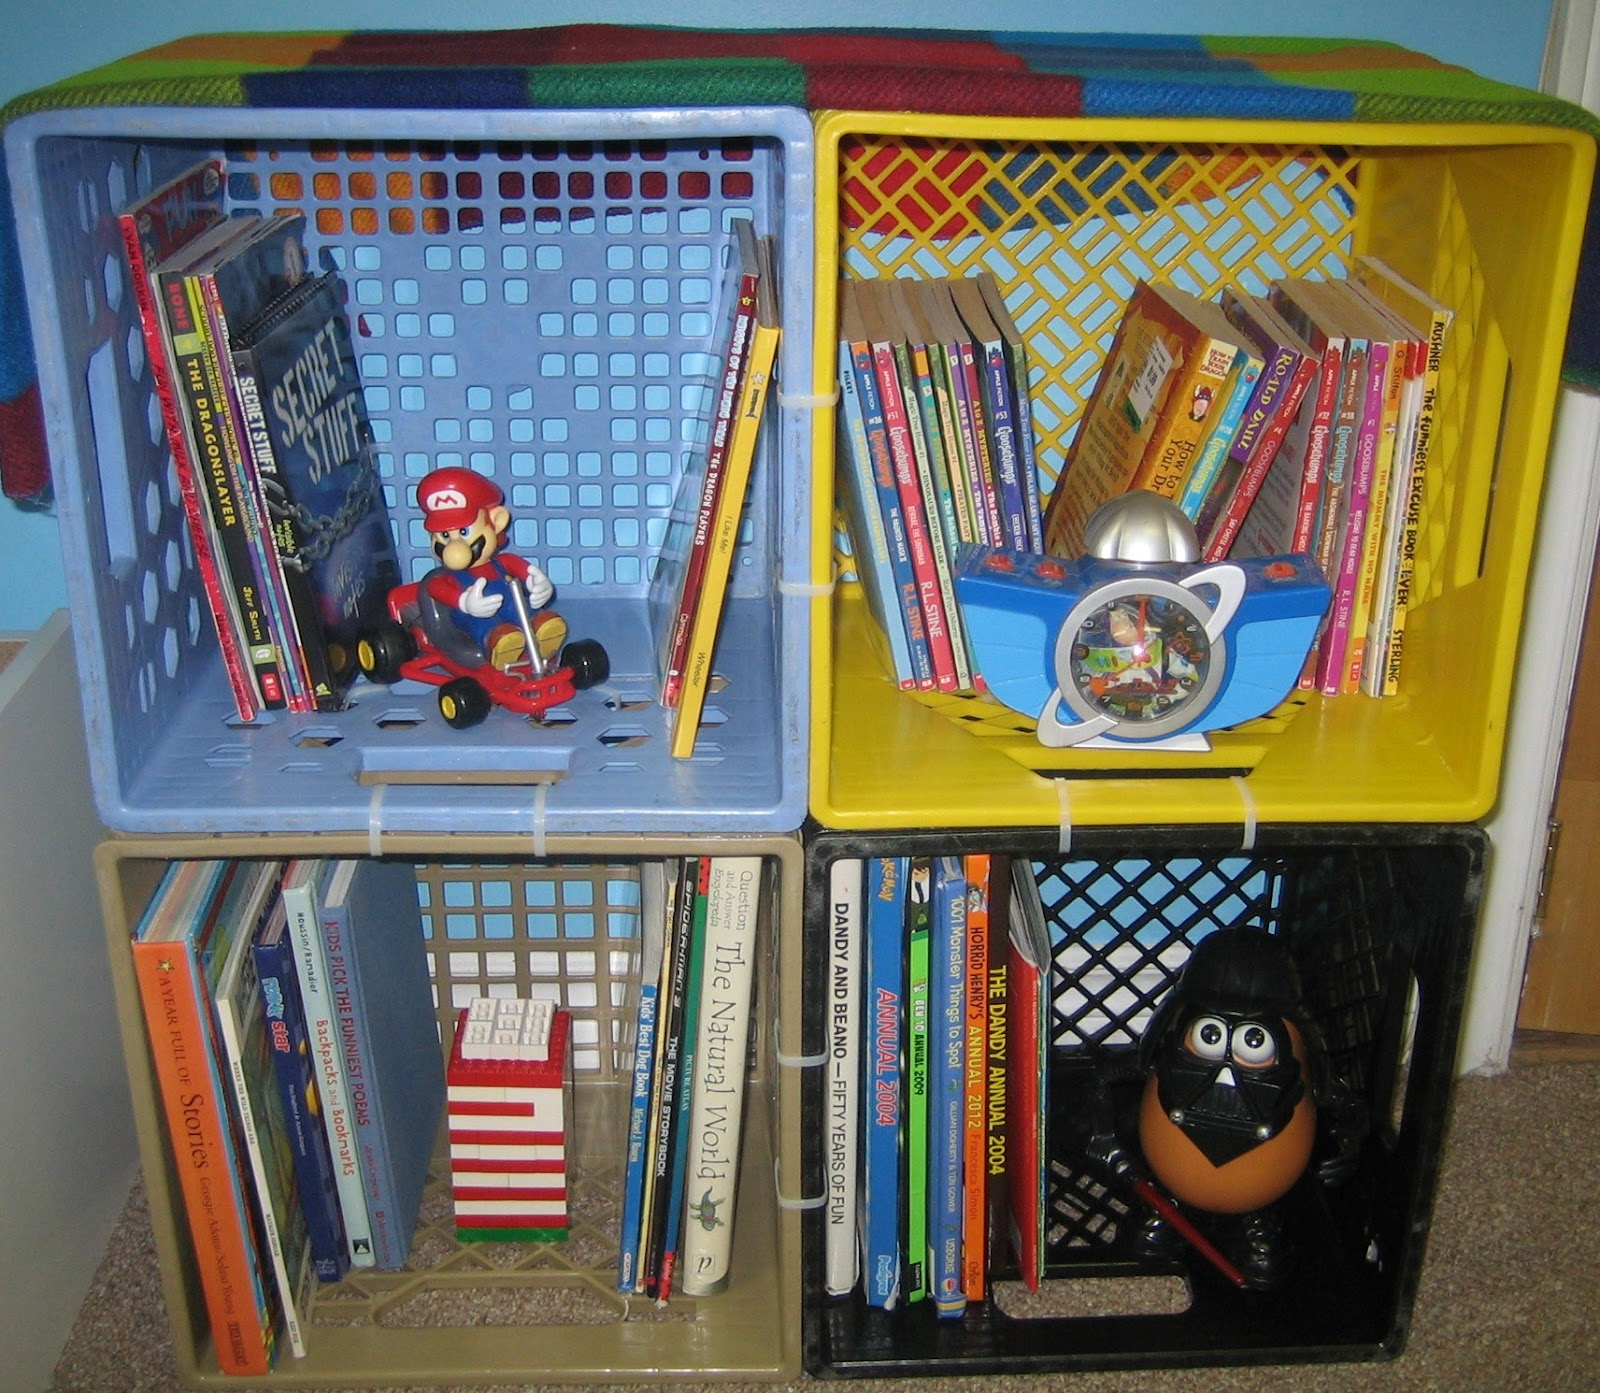 nickety nackety noo milk crate bookshelves - Using Crates As Bookshelves